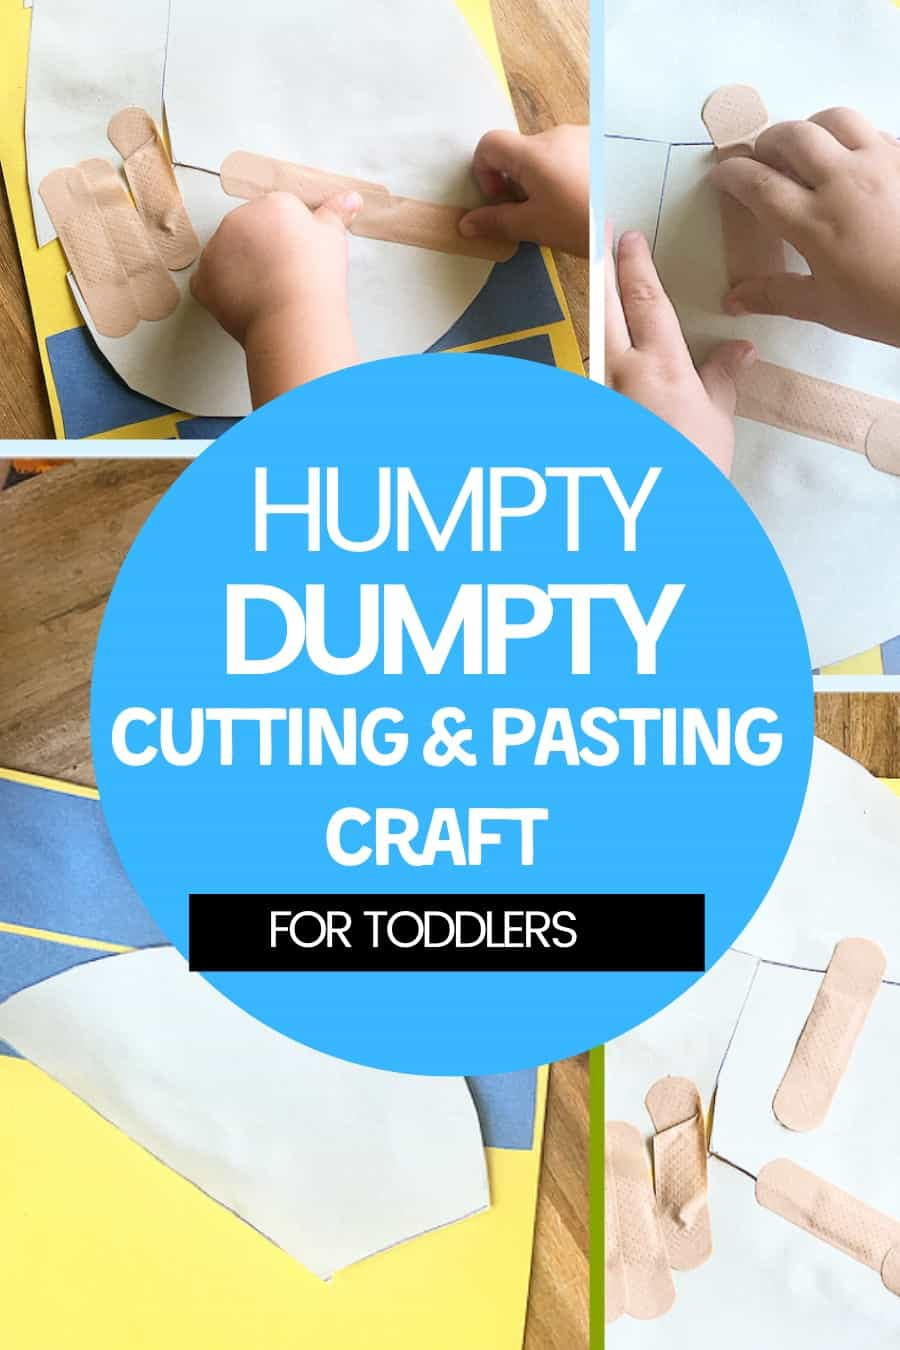 Humpty Dumpty cutting and pasting craft for toddlers